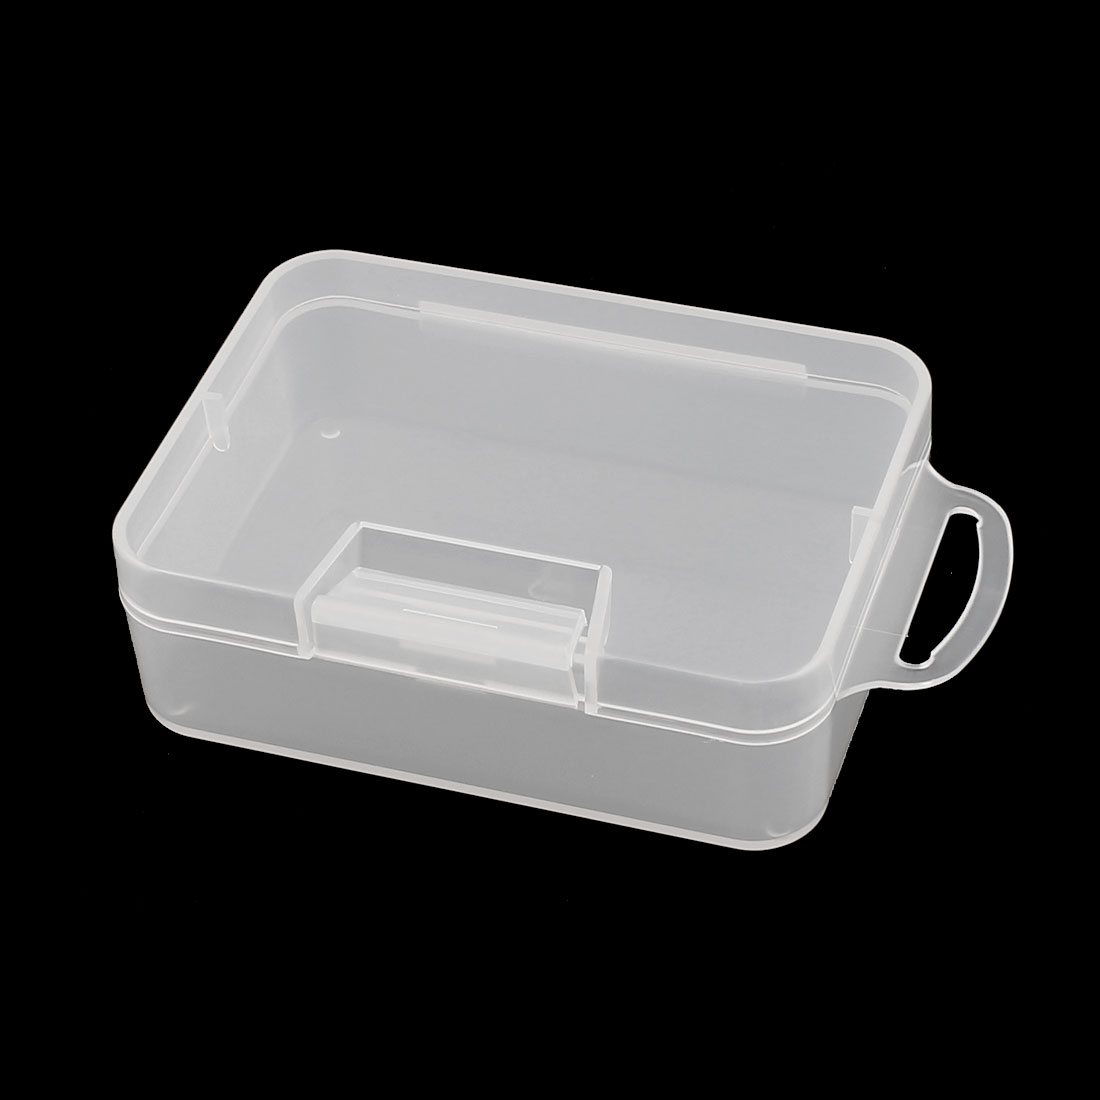 Transparent Earring Jewelry Collection Storage Container Box Case